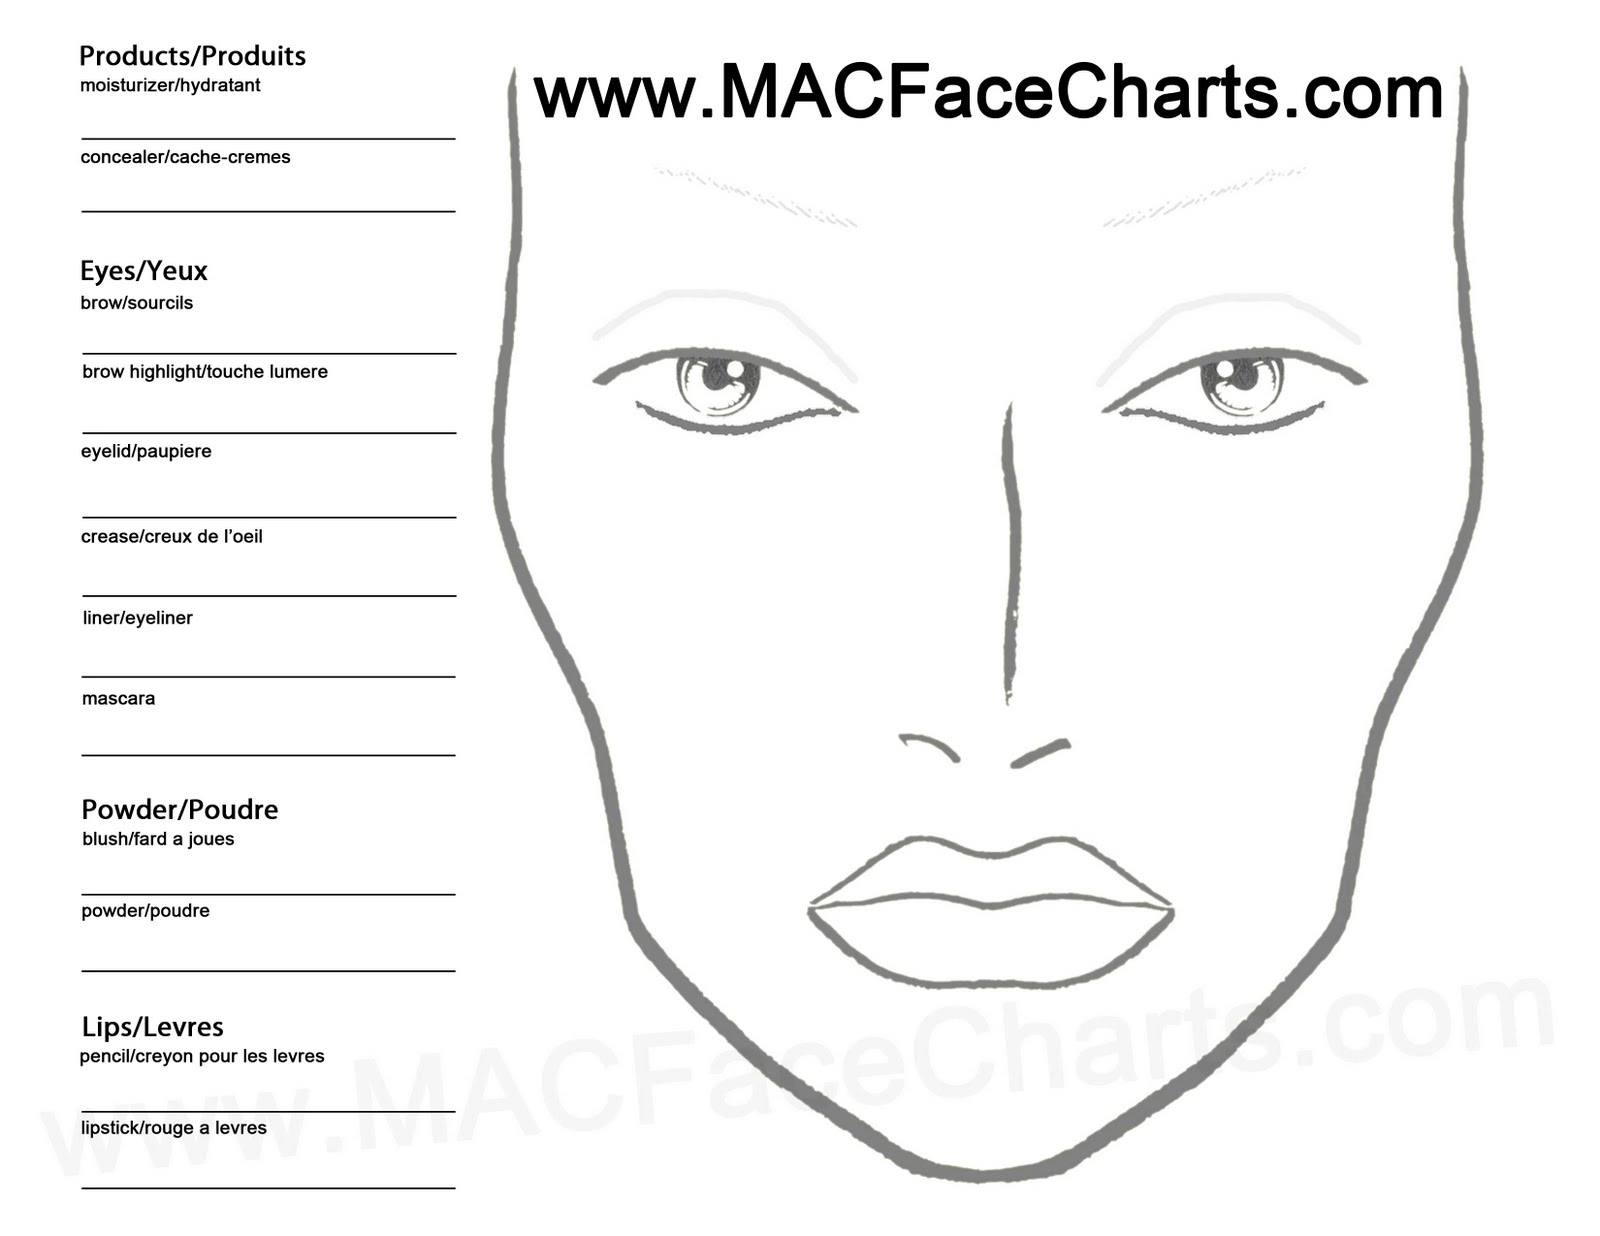 Empty Face Chart Sephora Blank face charts online!